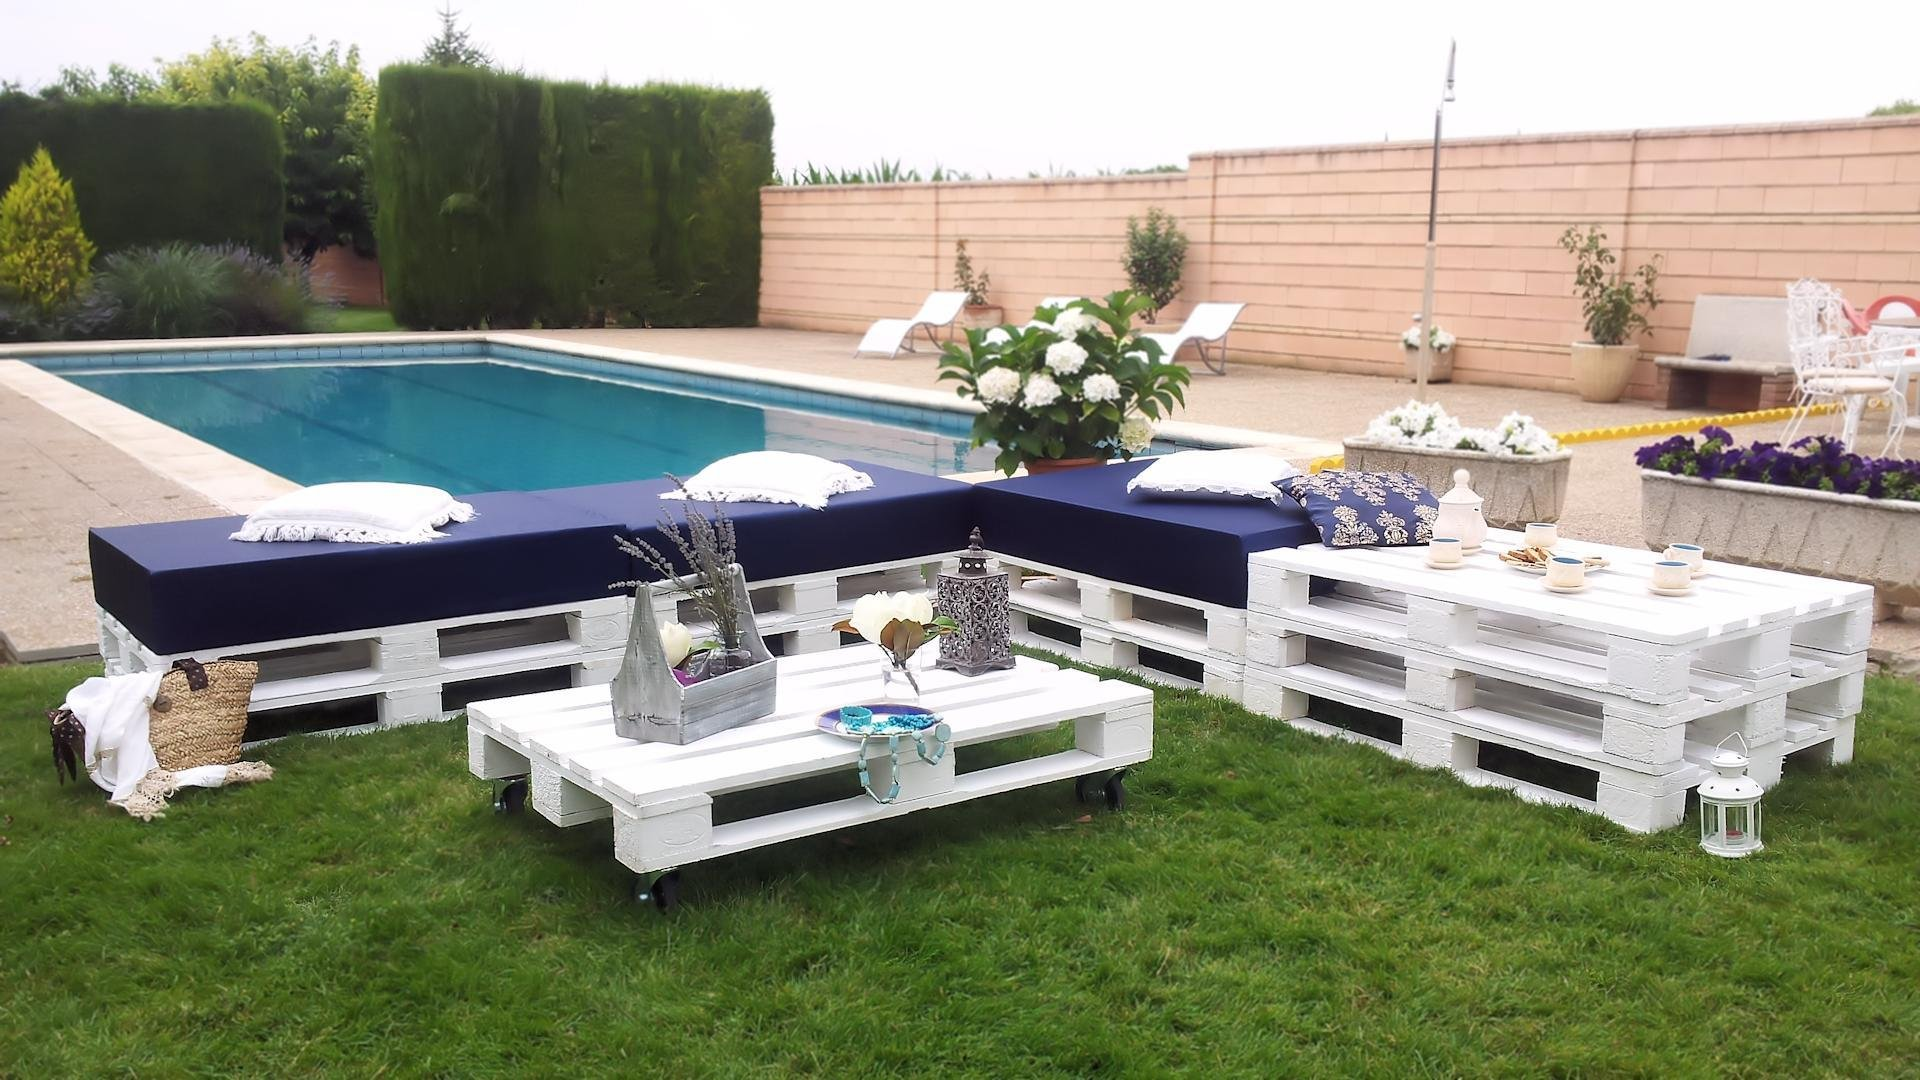 Chill out blanco de palets - Palets decoracion terraza ...